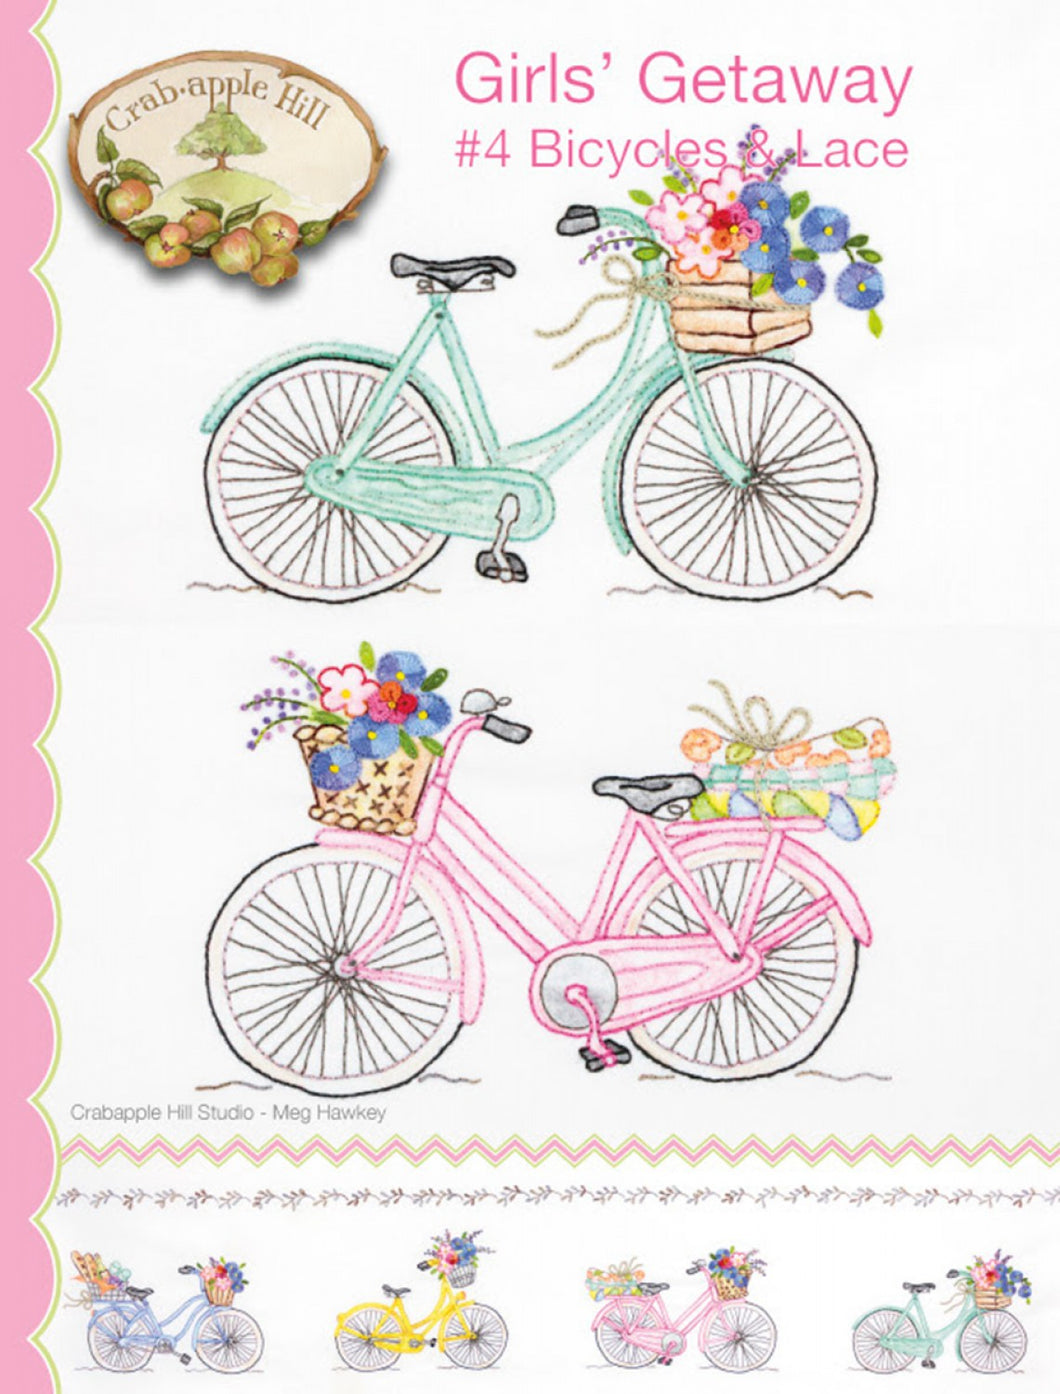 Girls' Getaway 4 Bicycles & Lace